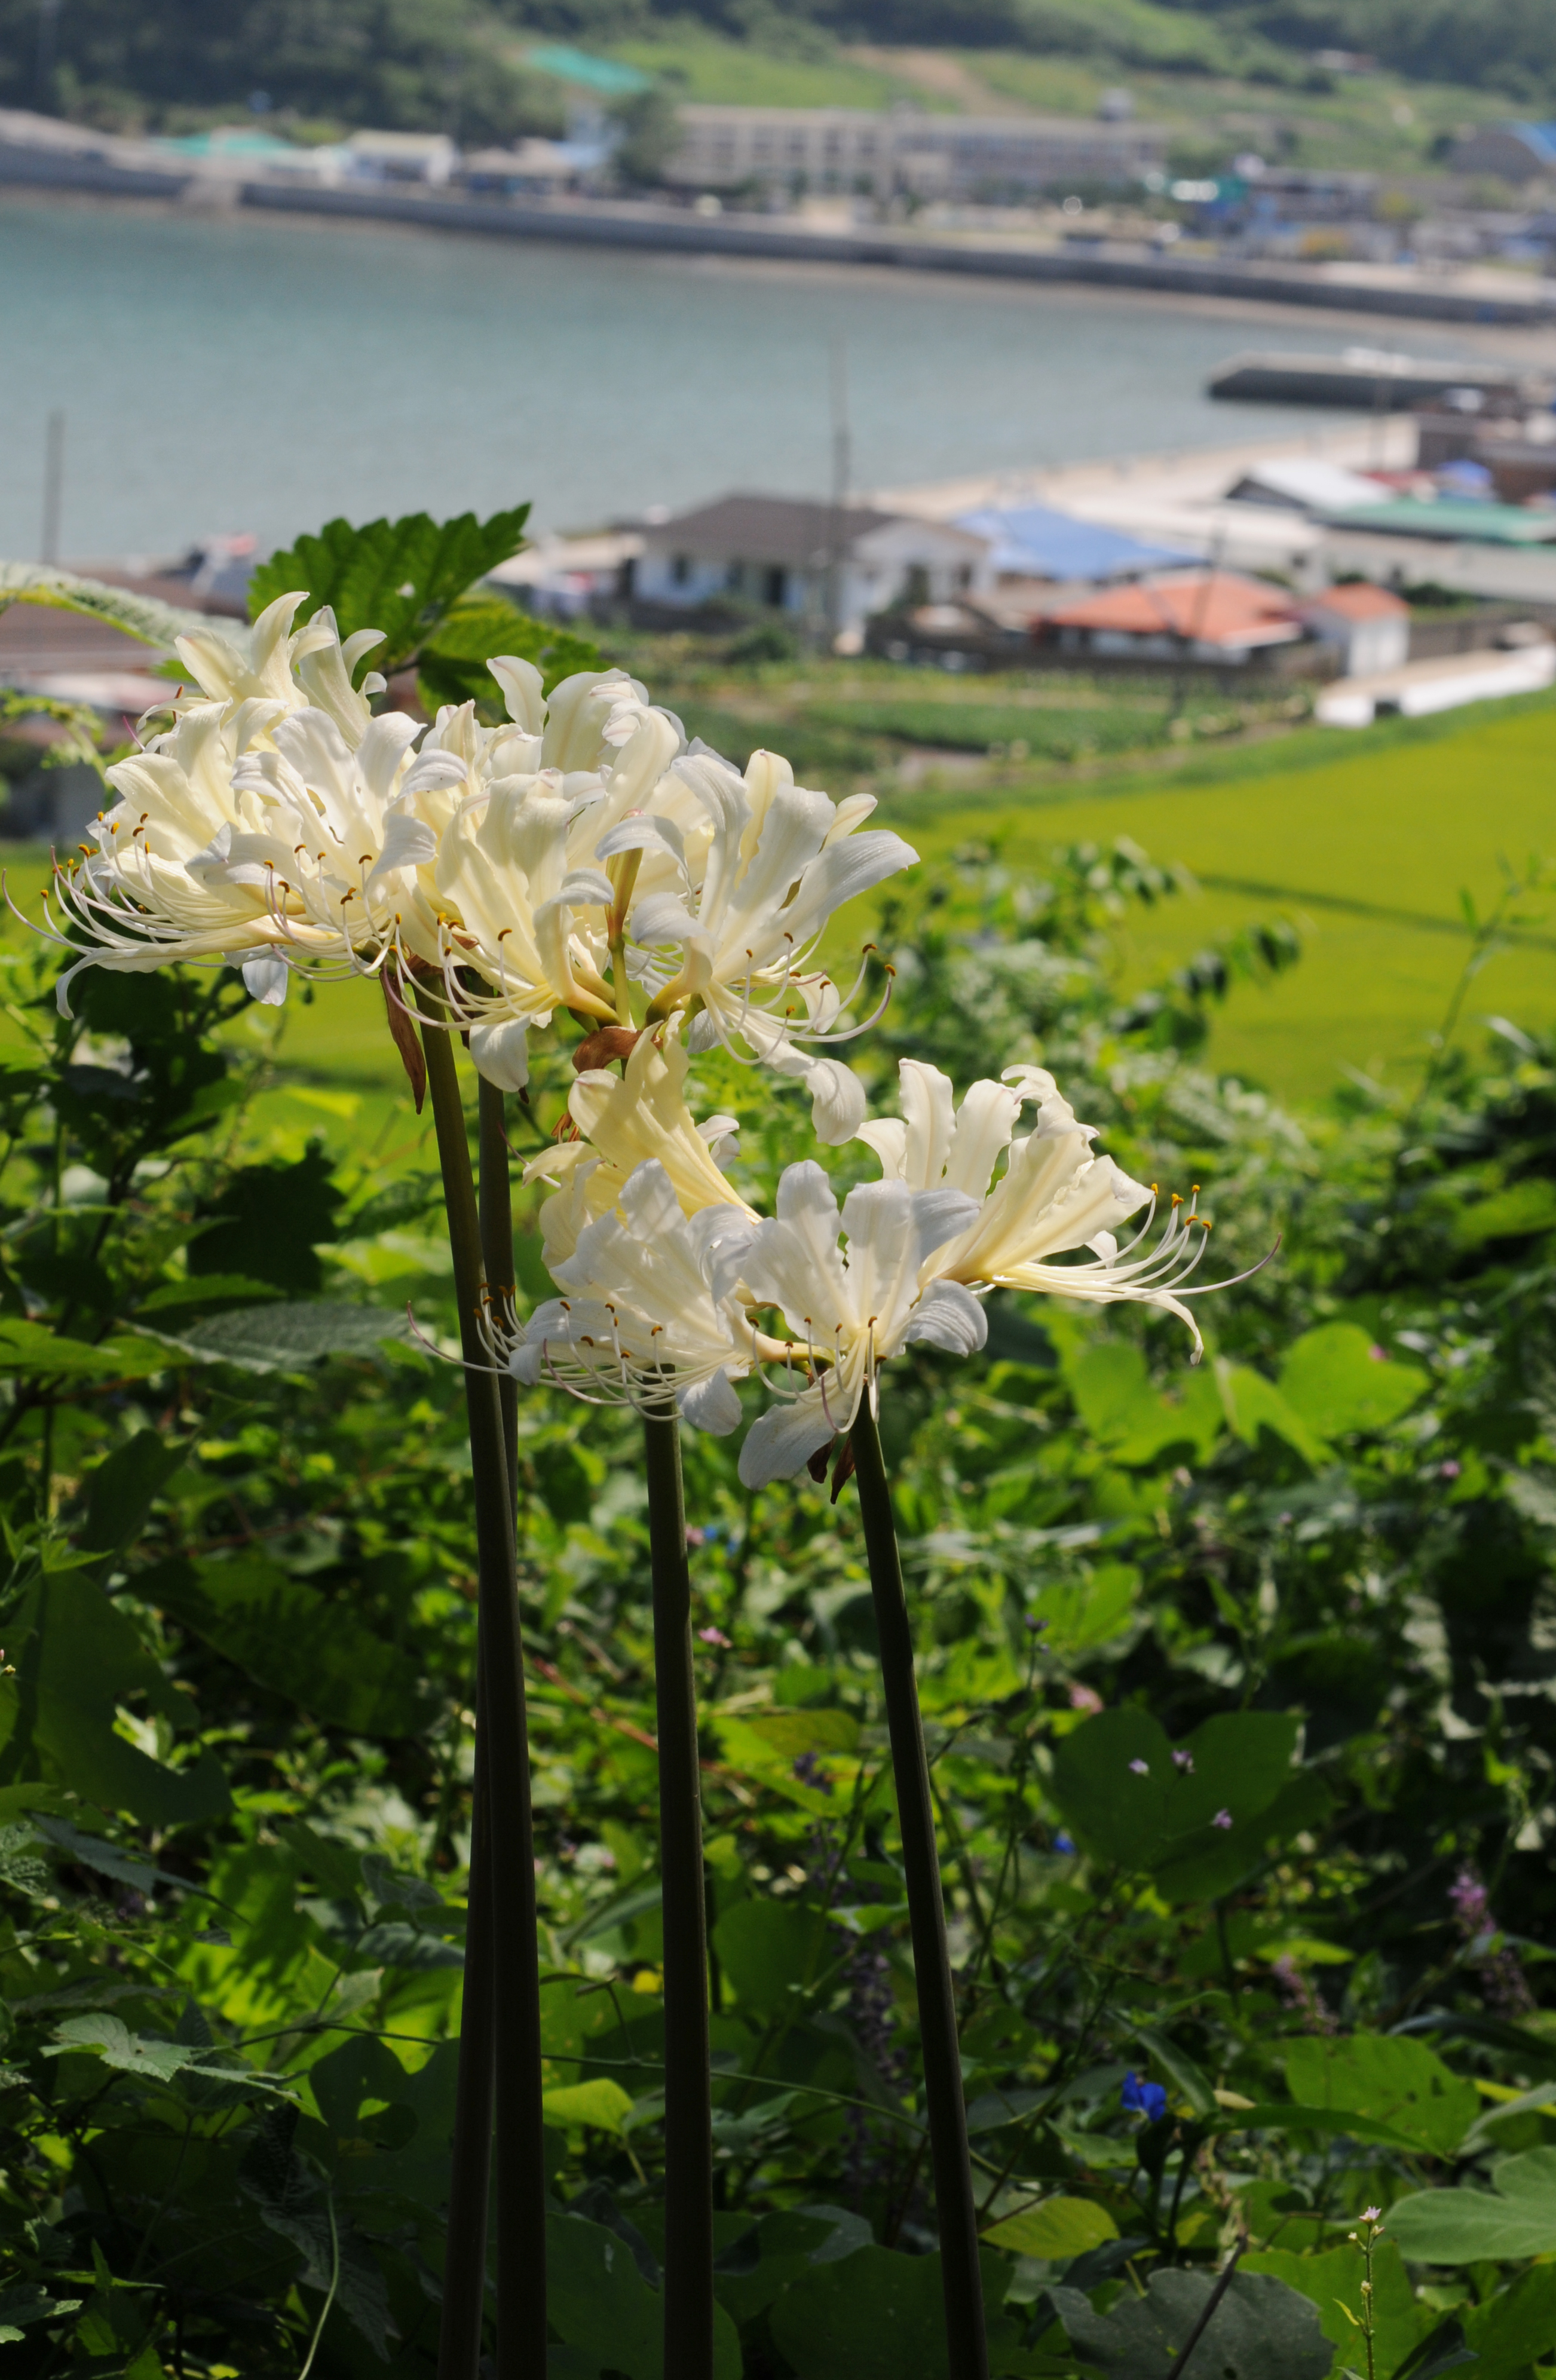 Walking through flowers under the moonlight uido magic lily the uido magic lily only grows on uido island island locals call it the izmirmasajfo